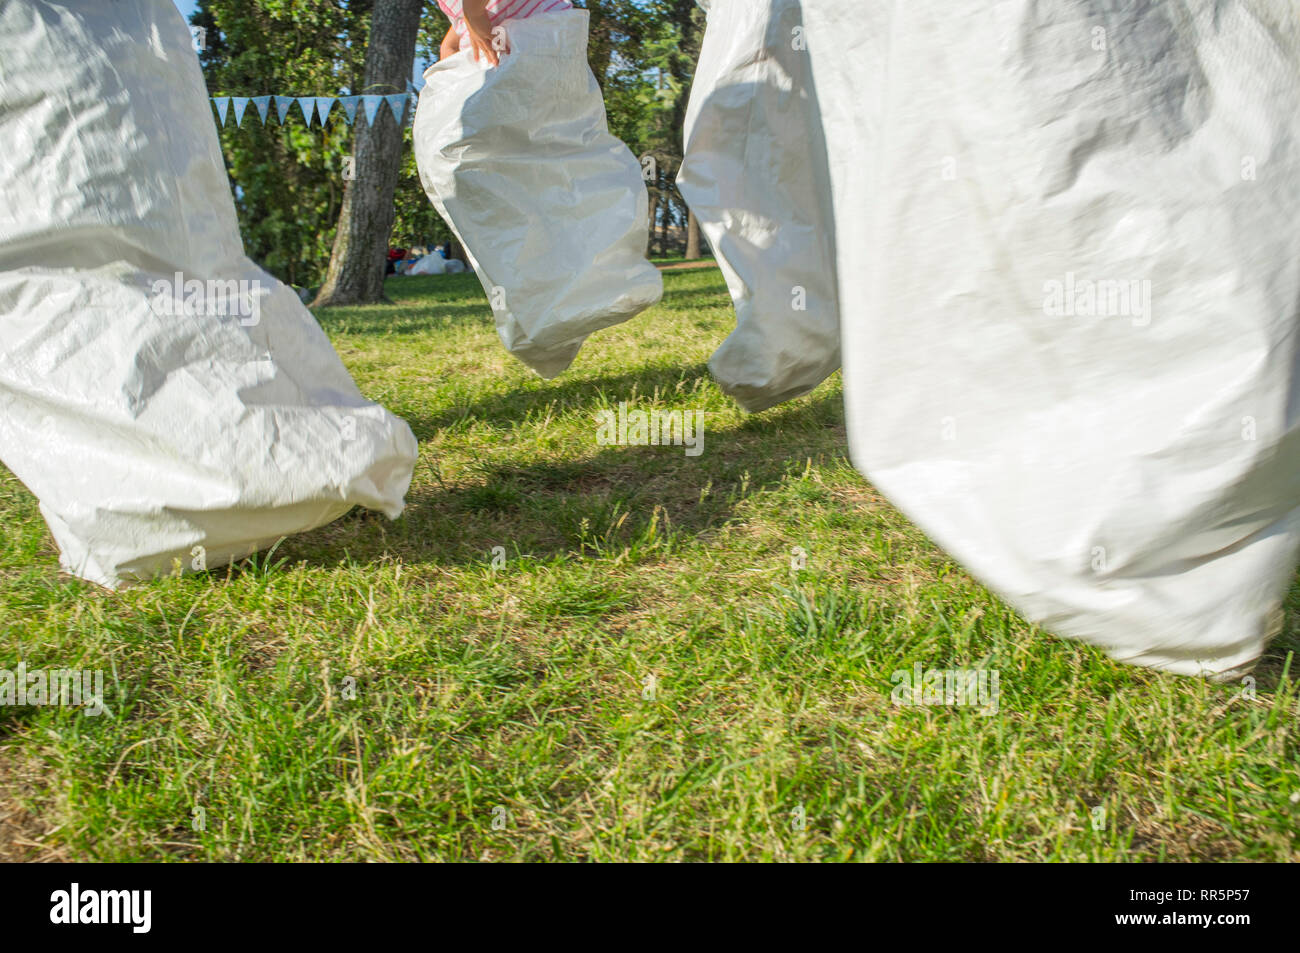 Children having a sack race in the park. Classic games concept. Motion blurred - Stock Image